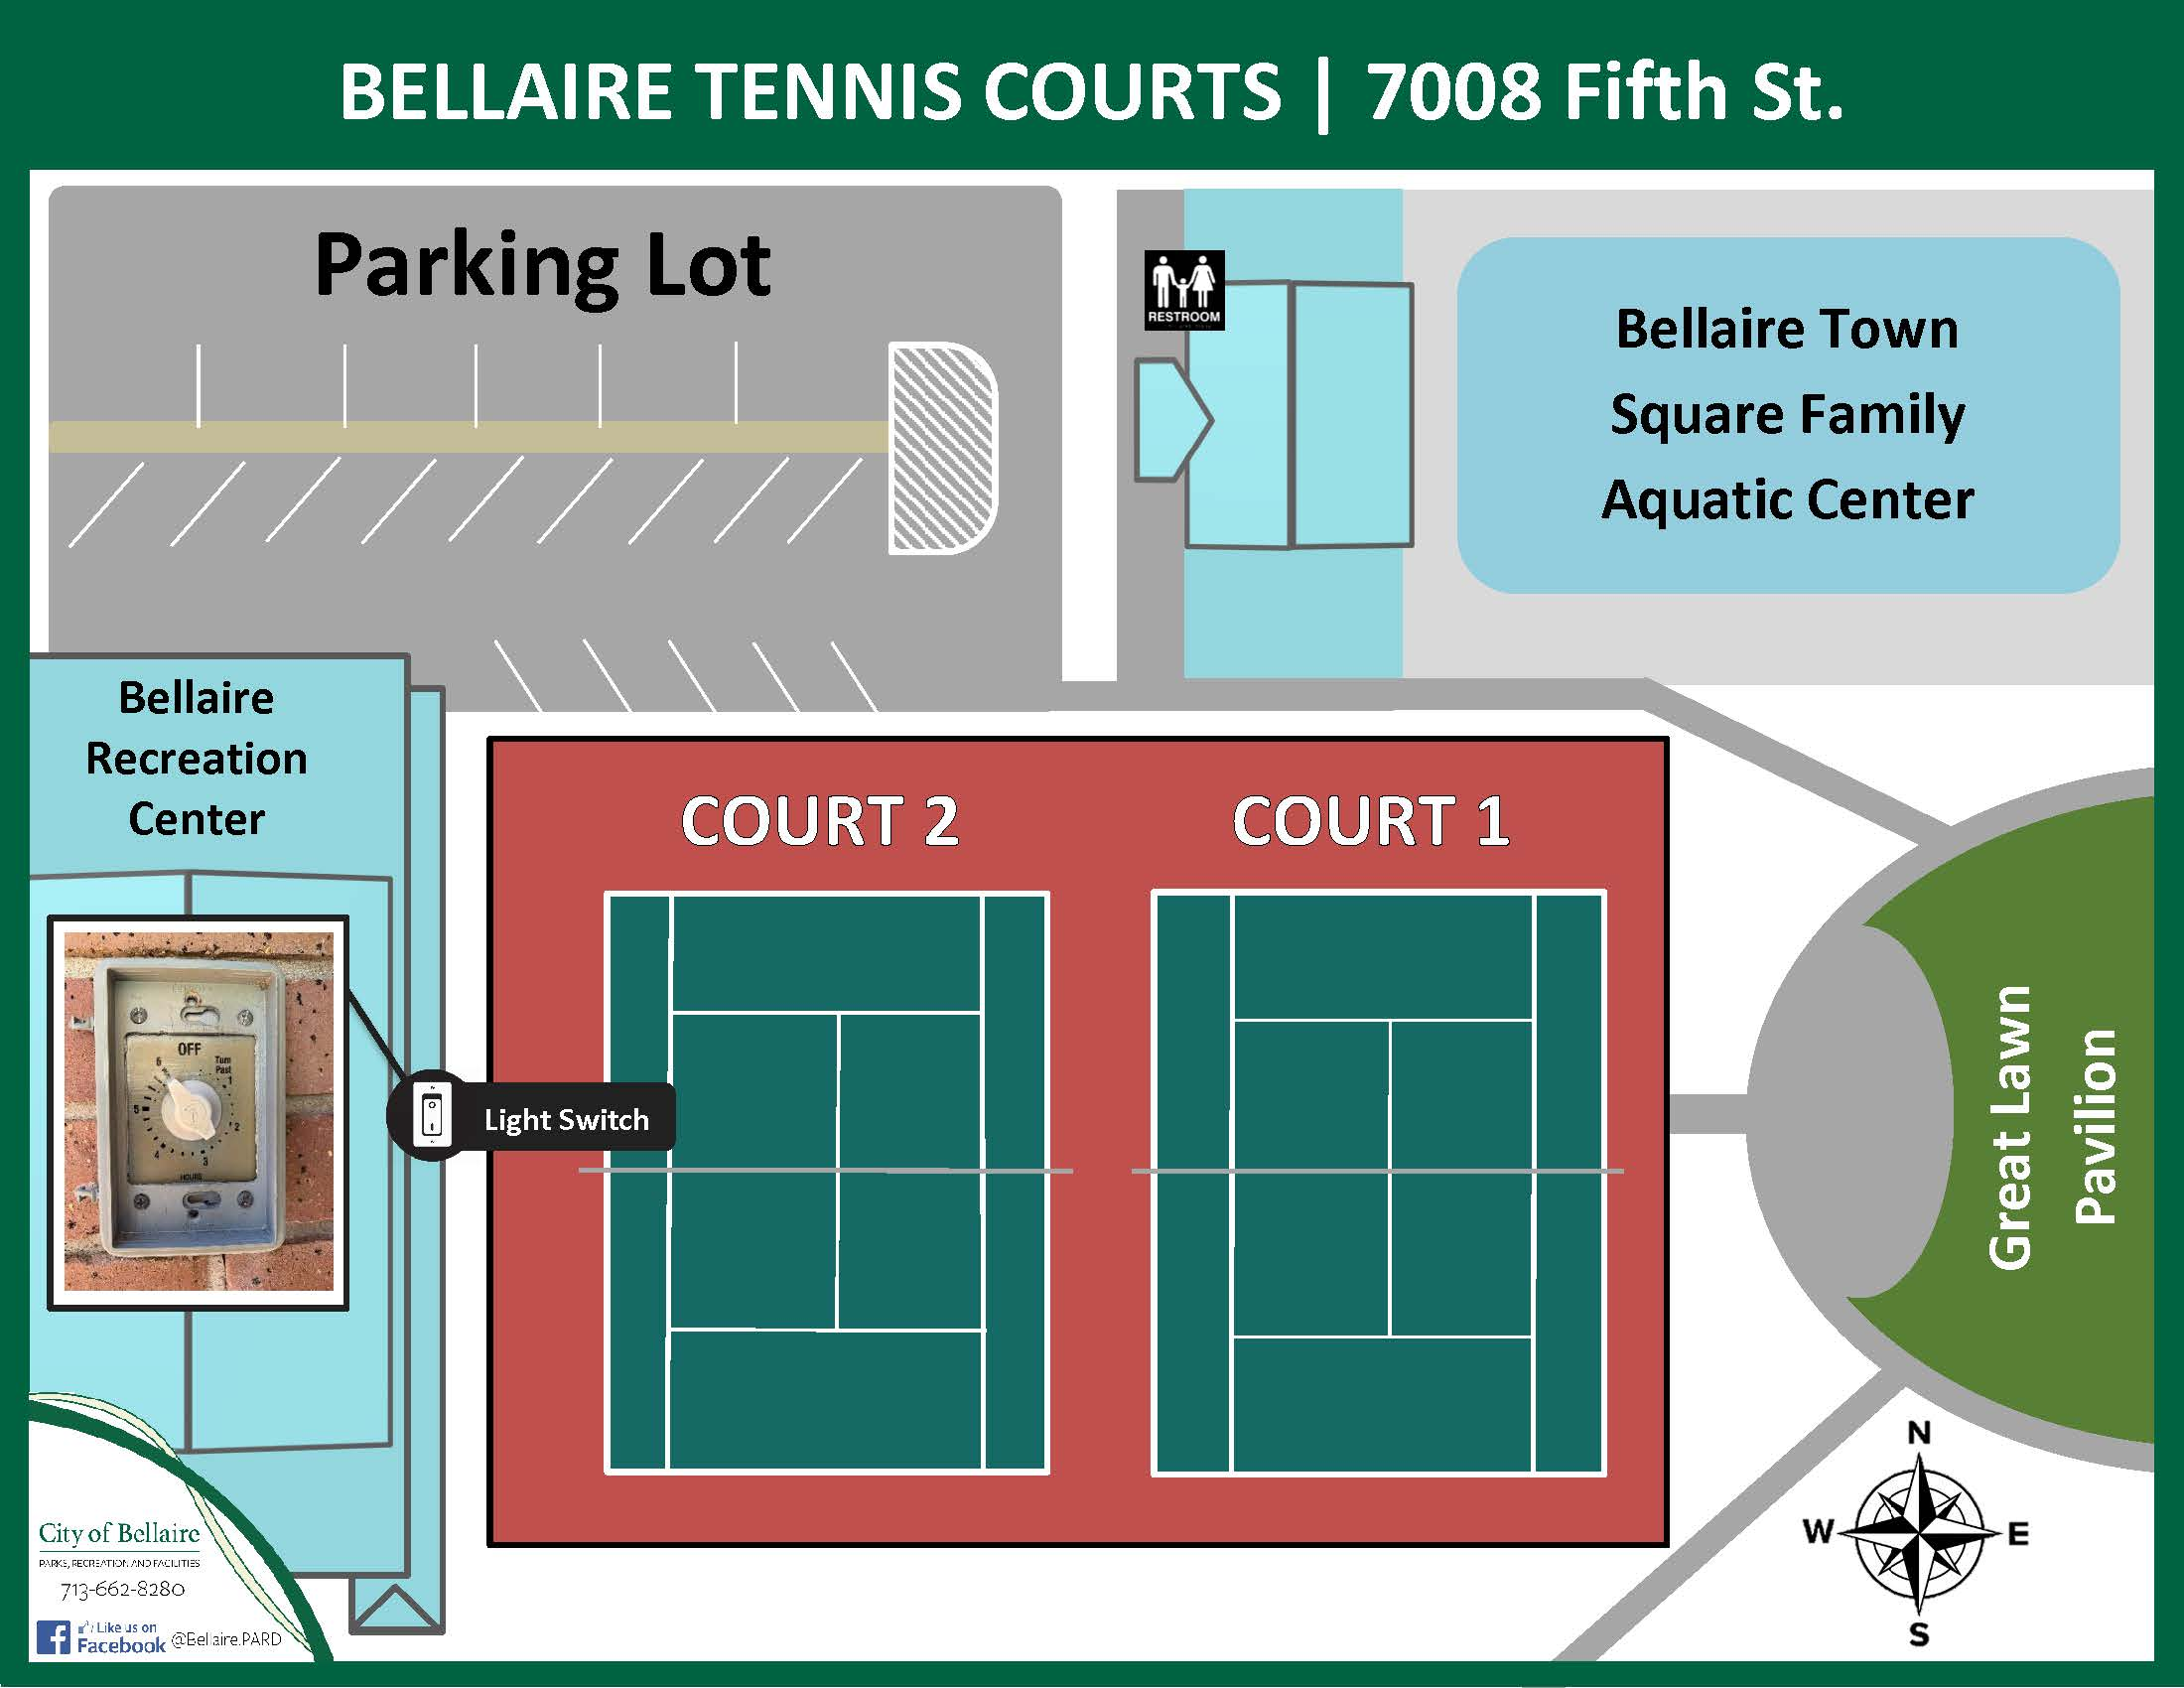 Bellaire Tennis Courts Map - 2